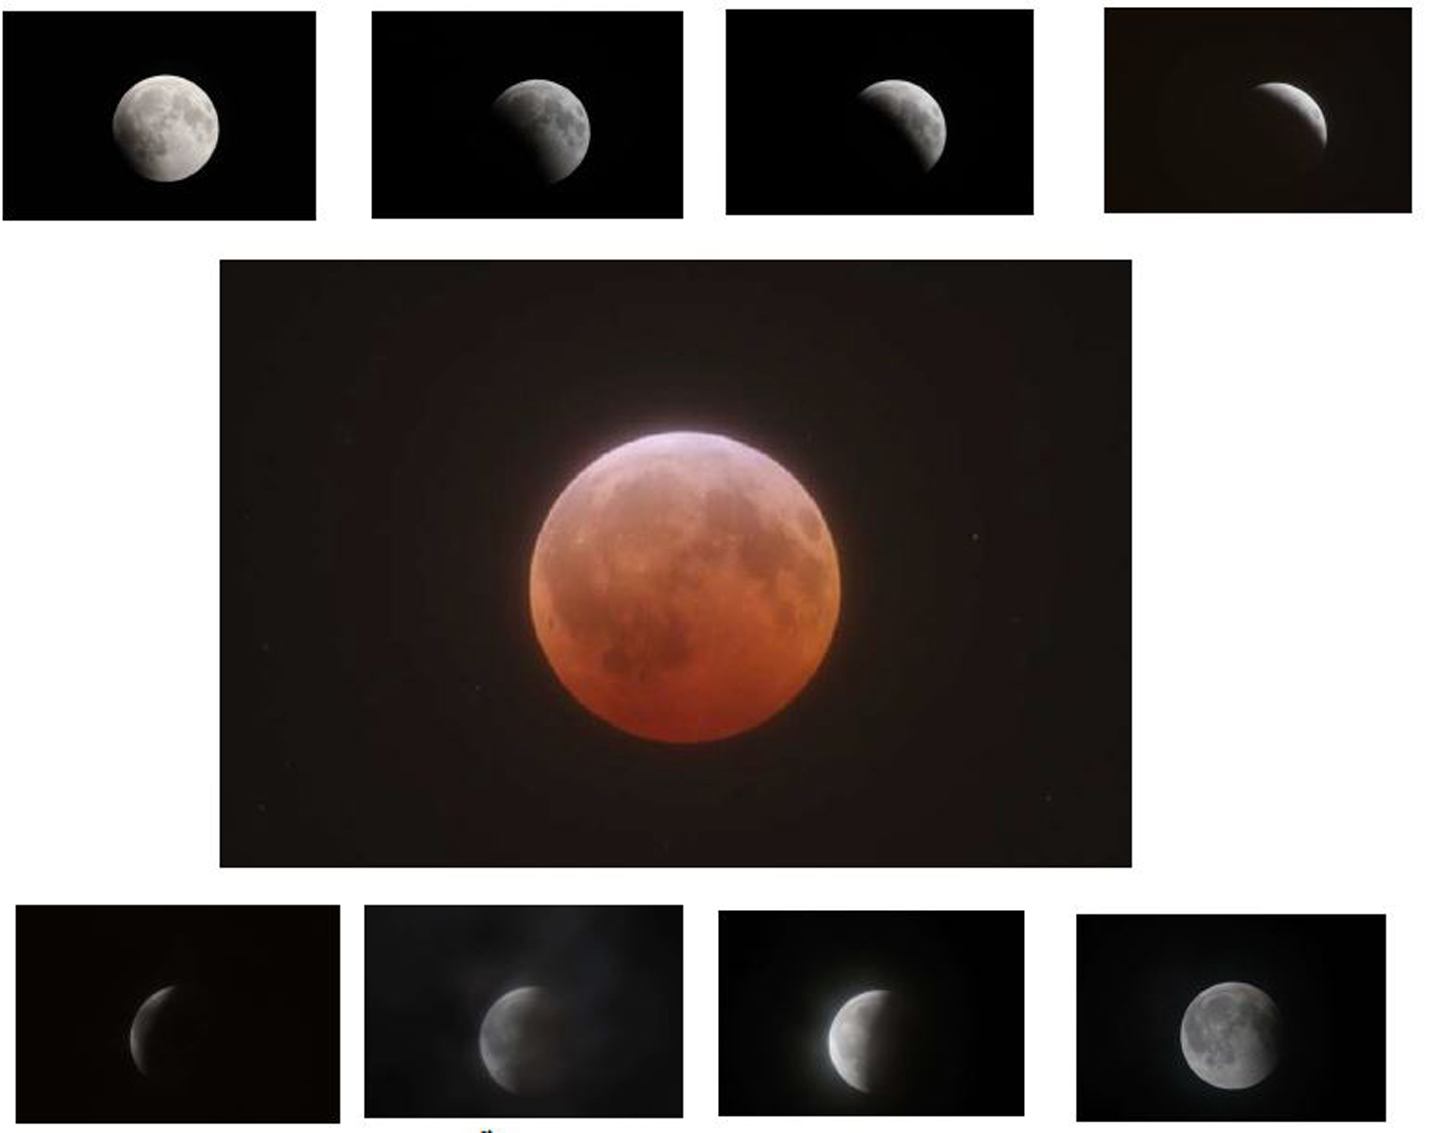 The December 21st, 2010 Total Lunar Eclipse – Partial Phases & Totality  Canon 40D at Prime Focus of an Orion EON ED80 Refracting Telescope  on a Losmandy G-11 Equatorial Mount